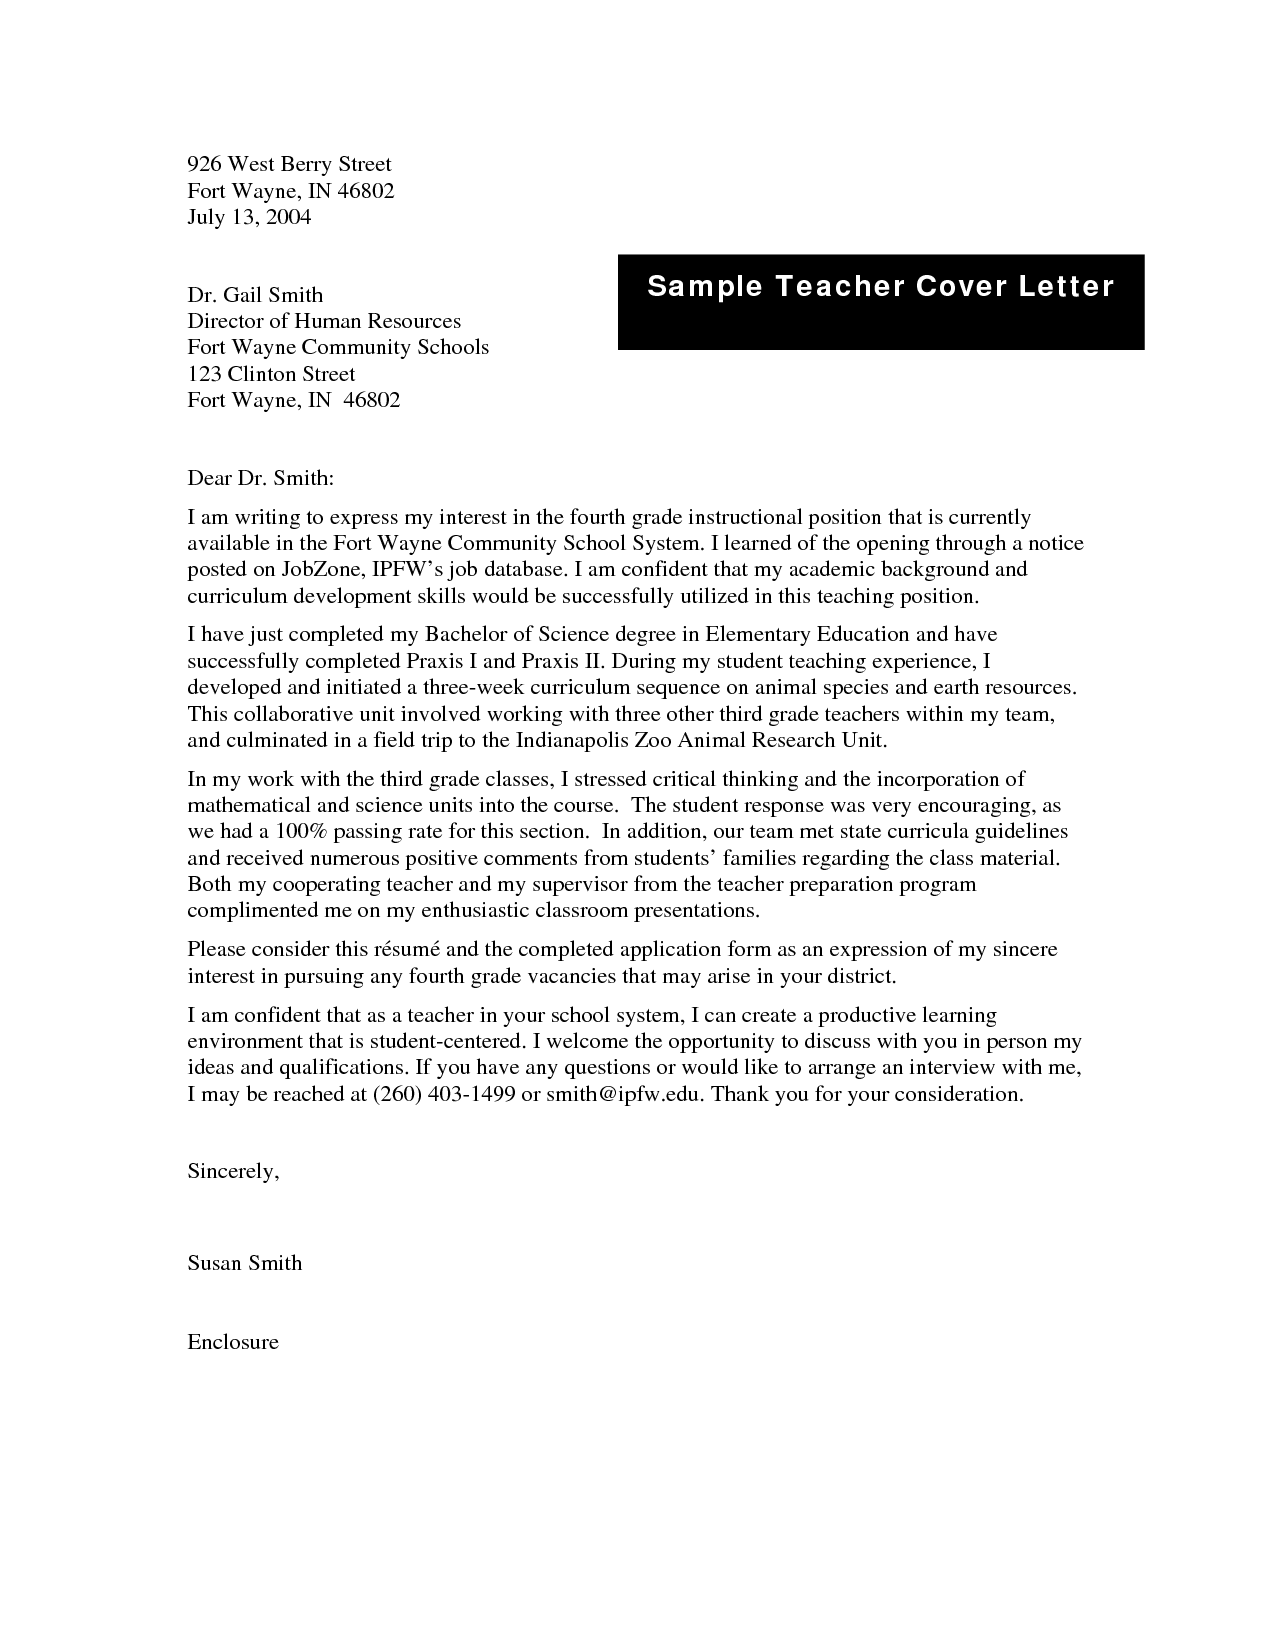 Business Teacher Cover Letter Great Cover Letter For Teachers With Preferred Qualification And